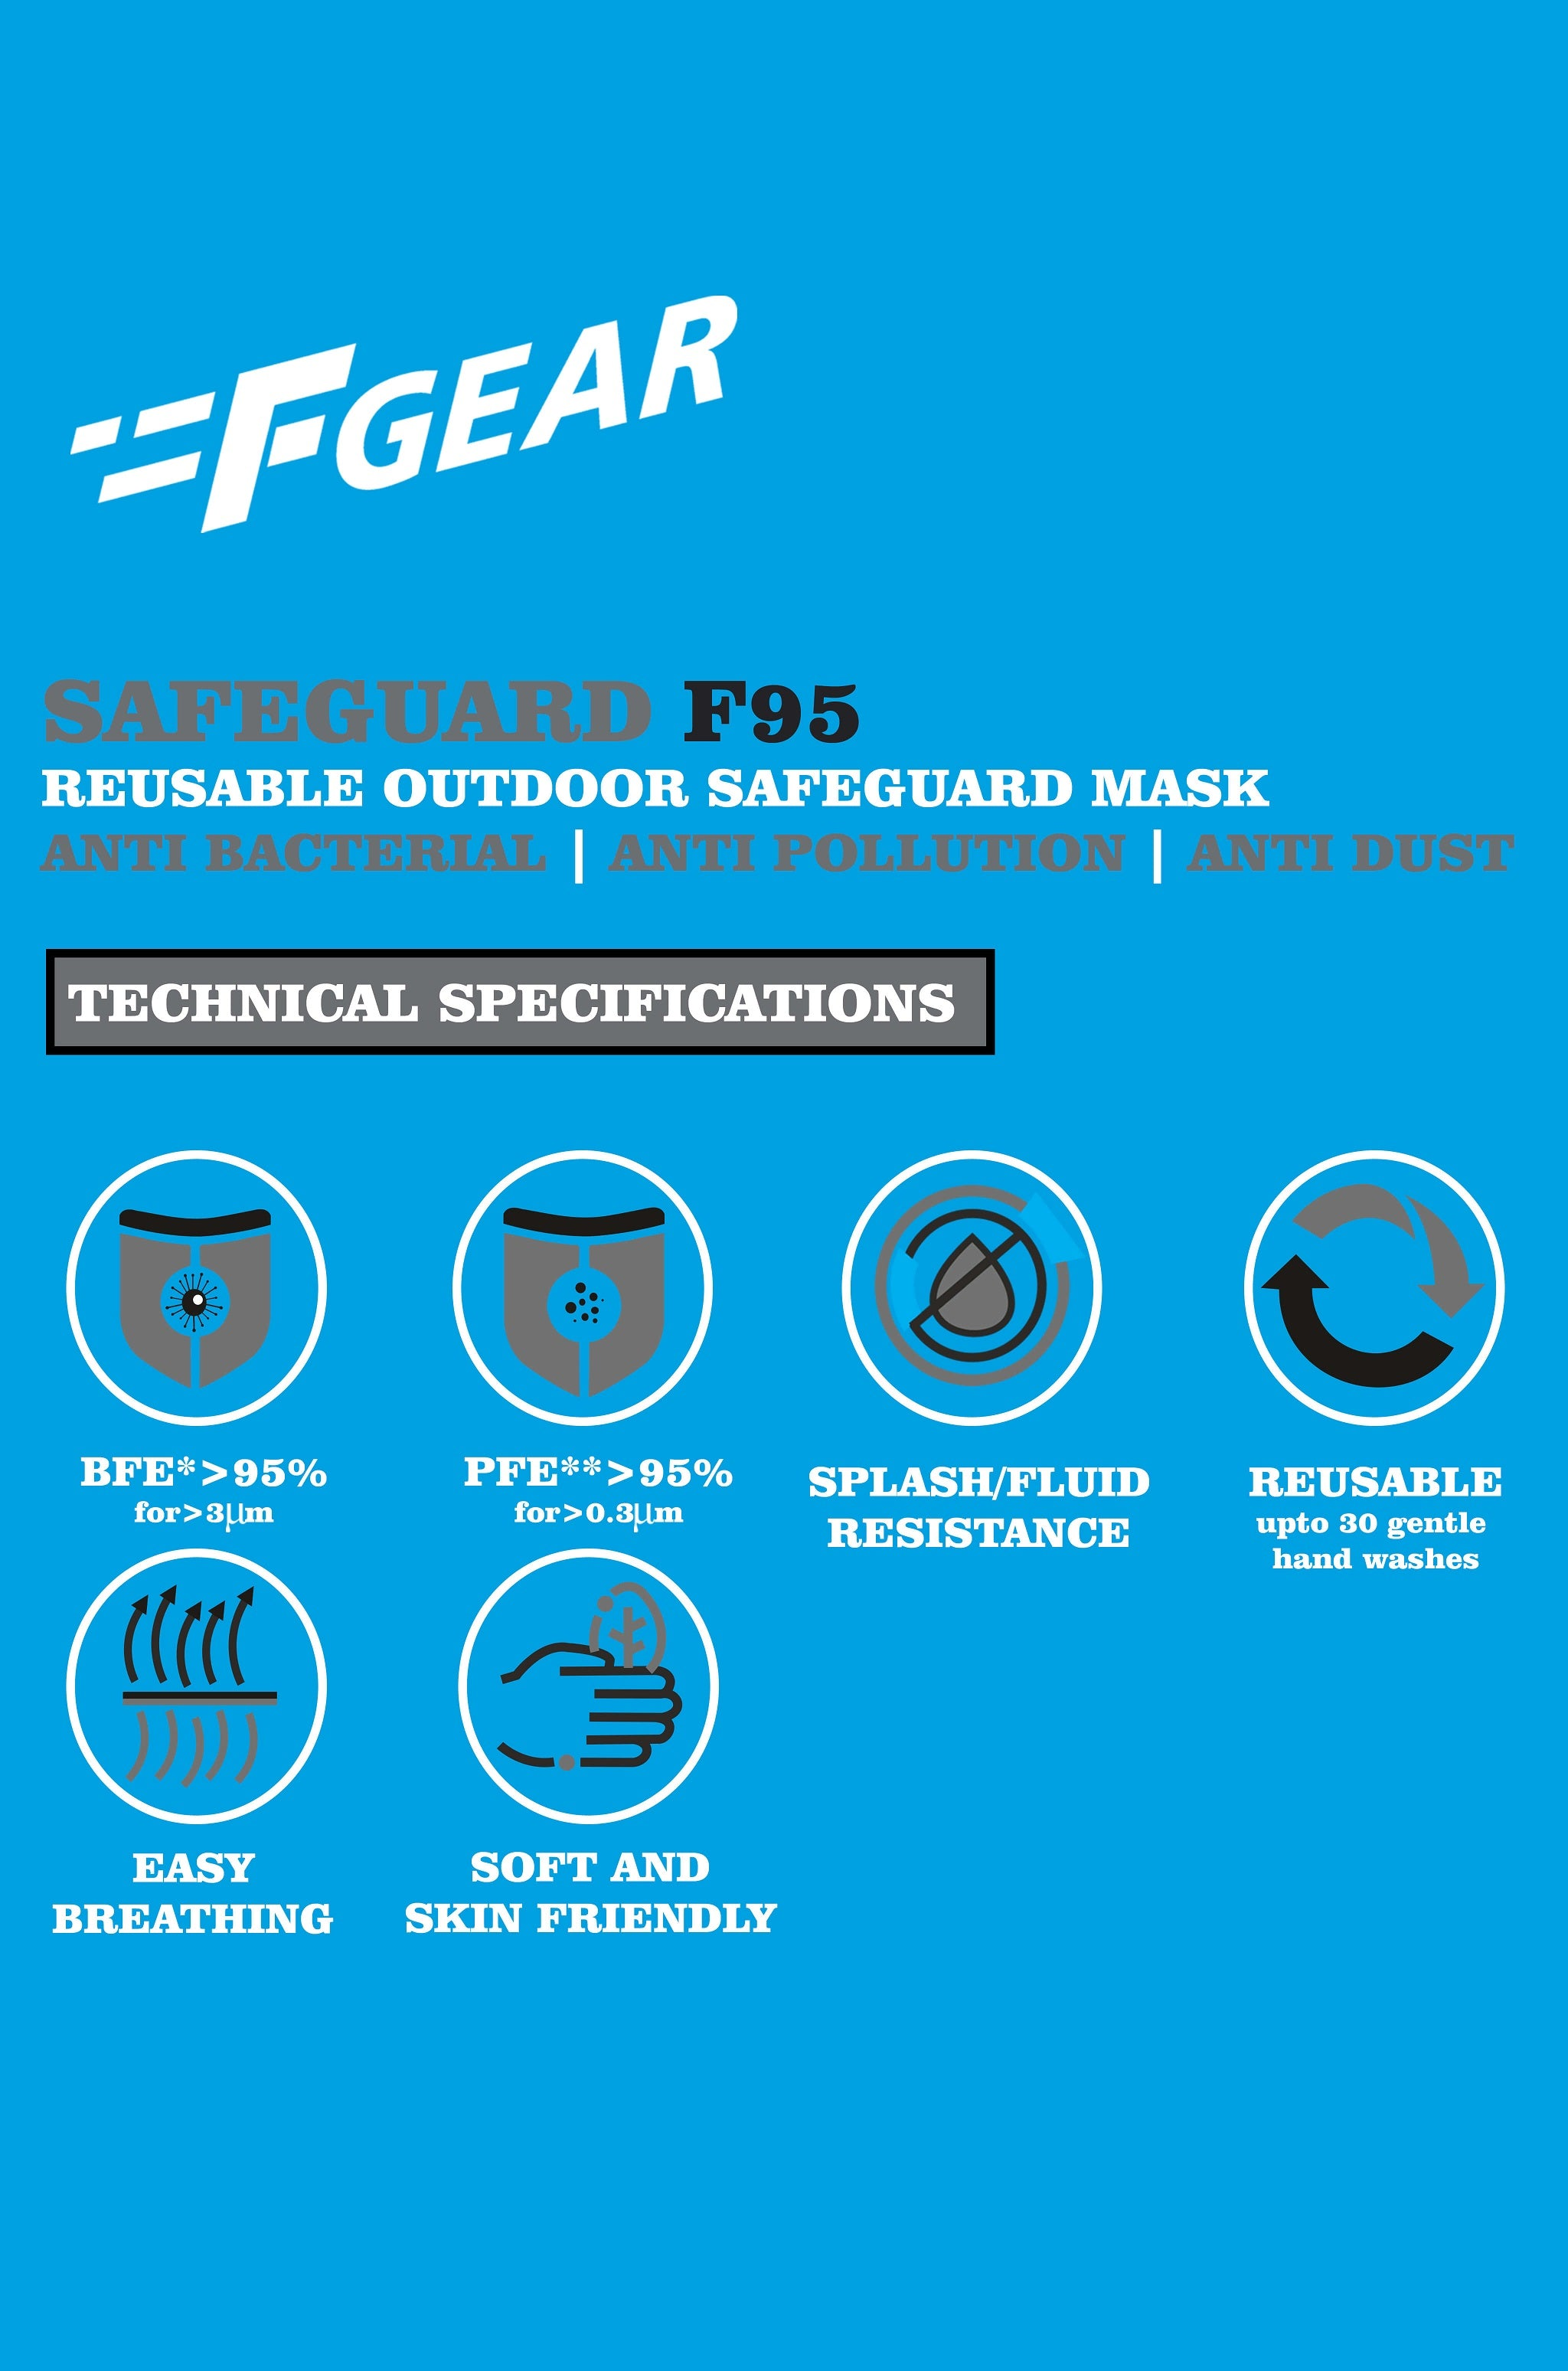 F Gear Safeguard F95 Outdoor Mask (Pack of 5)